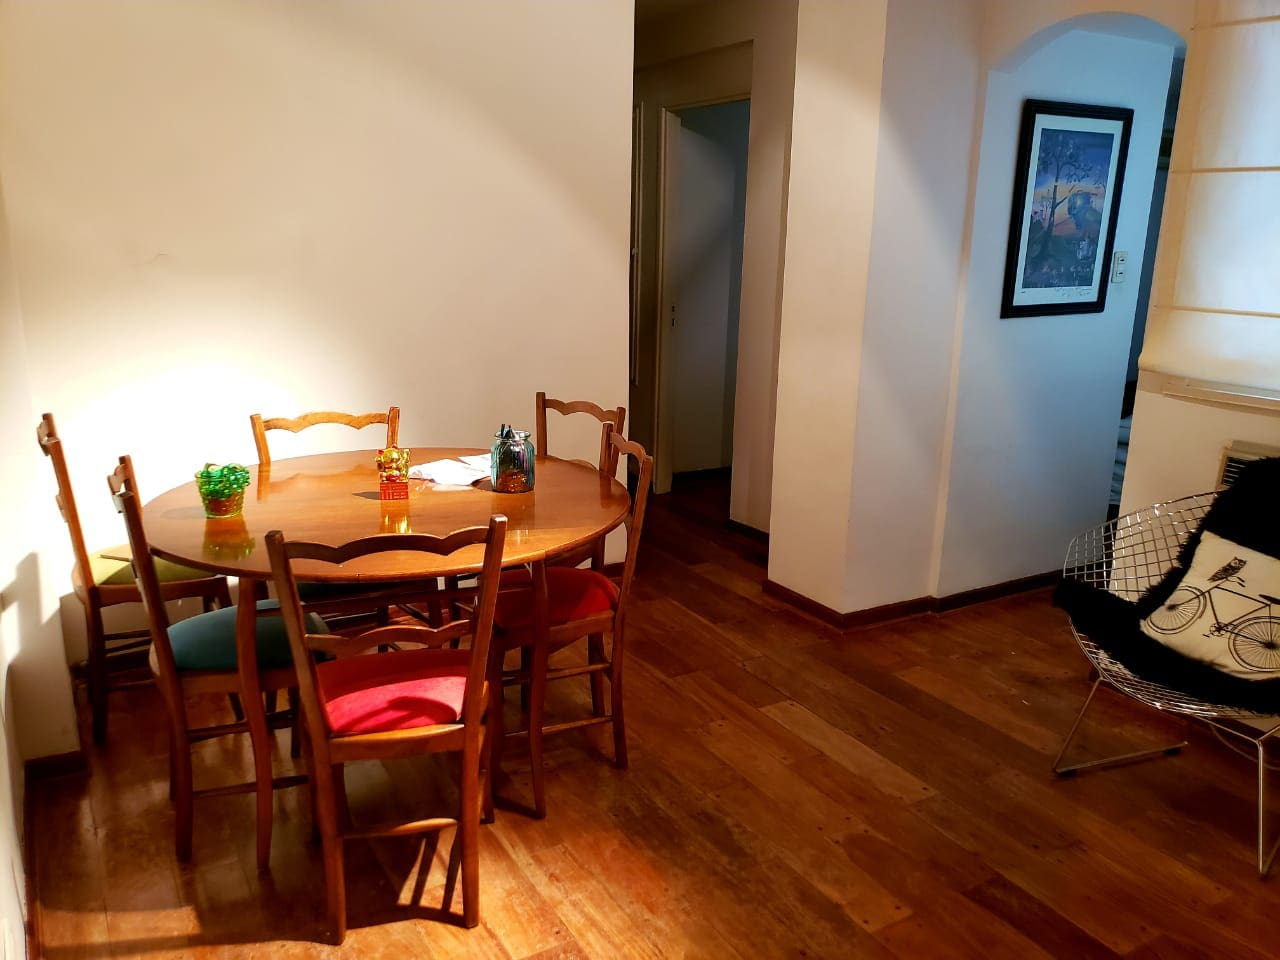 comedor mesa y 6 sillas piso madera tarugada/ funny dinning room  with table and 6 chairs.